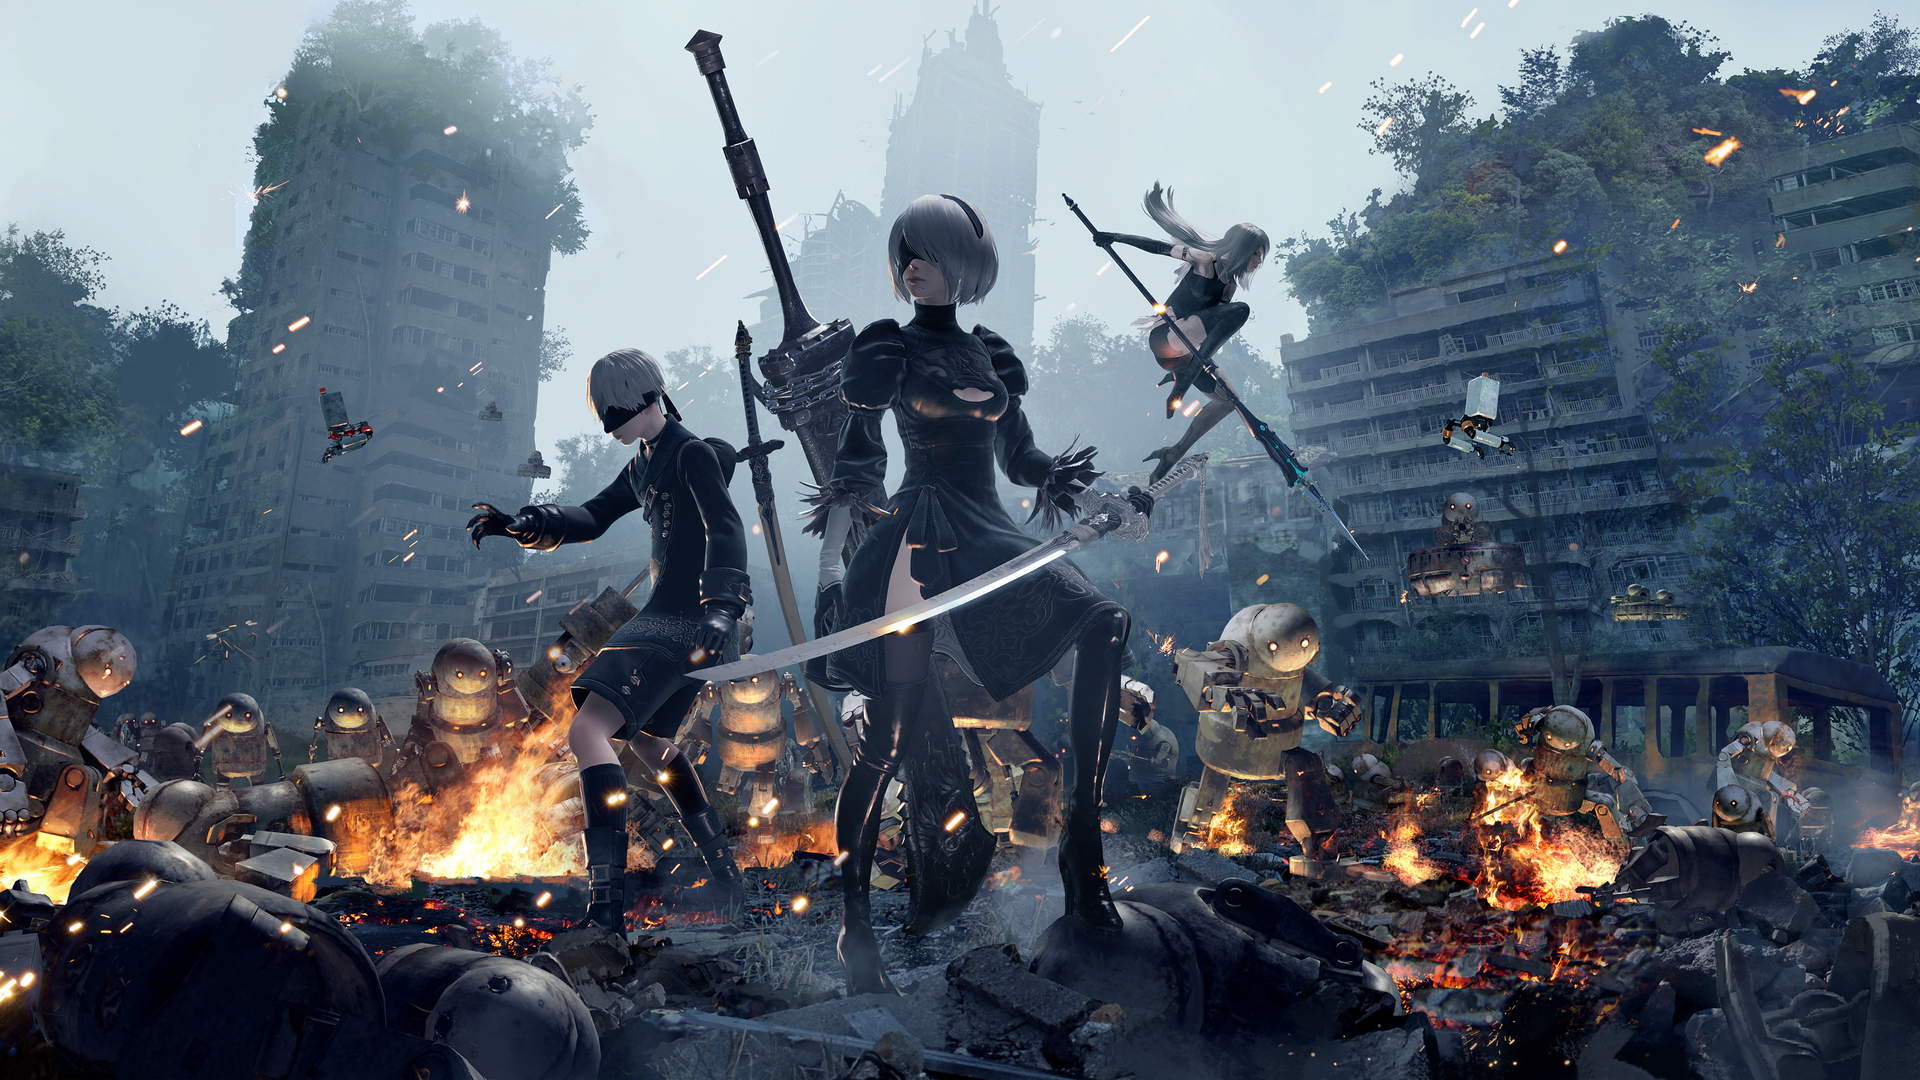 1920x1080 9S 2B And A2 NieR Automata 4k Laptop Full HD